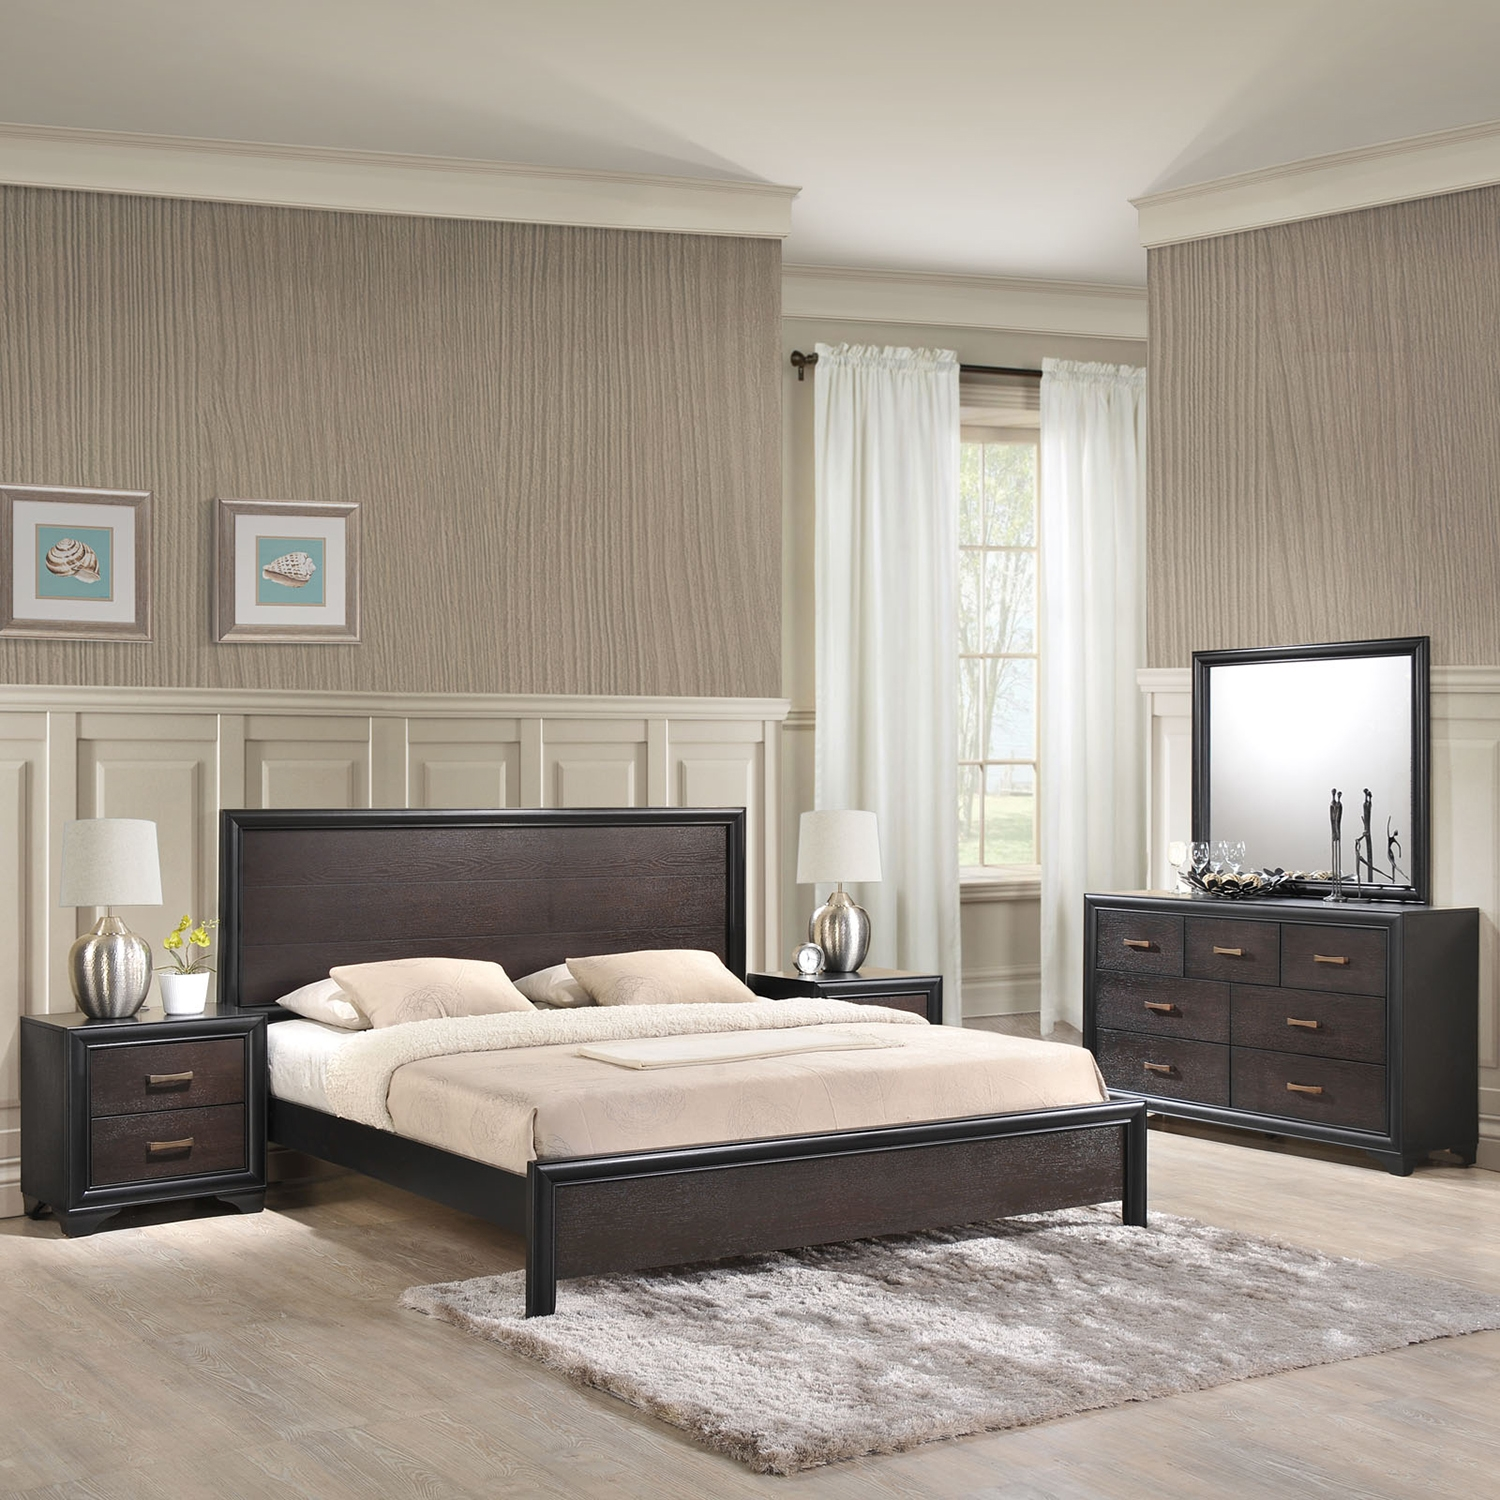 Madison 5 Pieces Bedroom Set - Walnut - EEI-MOD-53-WAL-SET-5PC